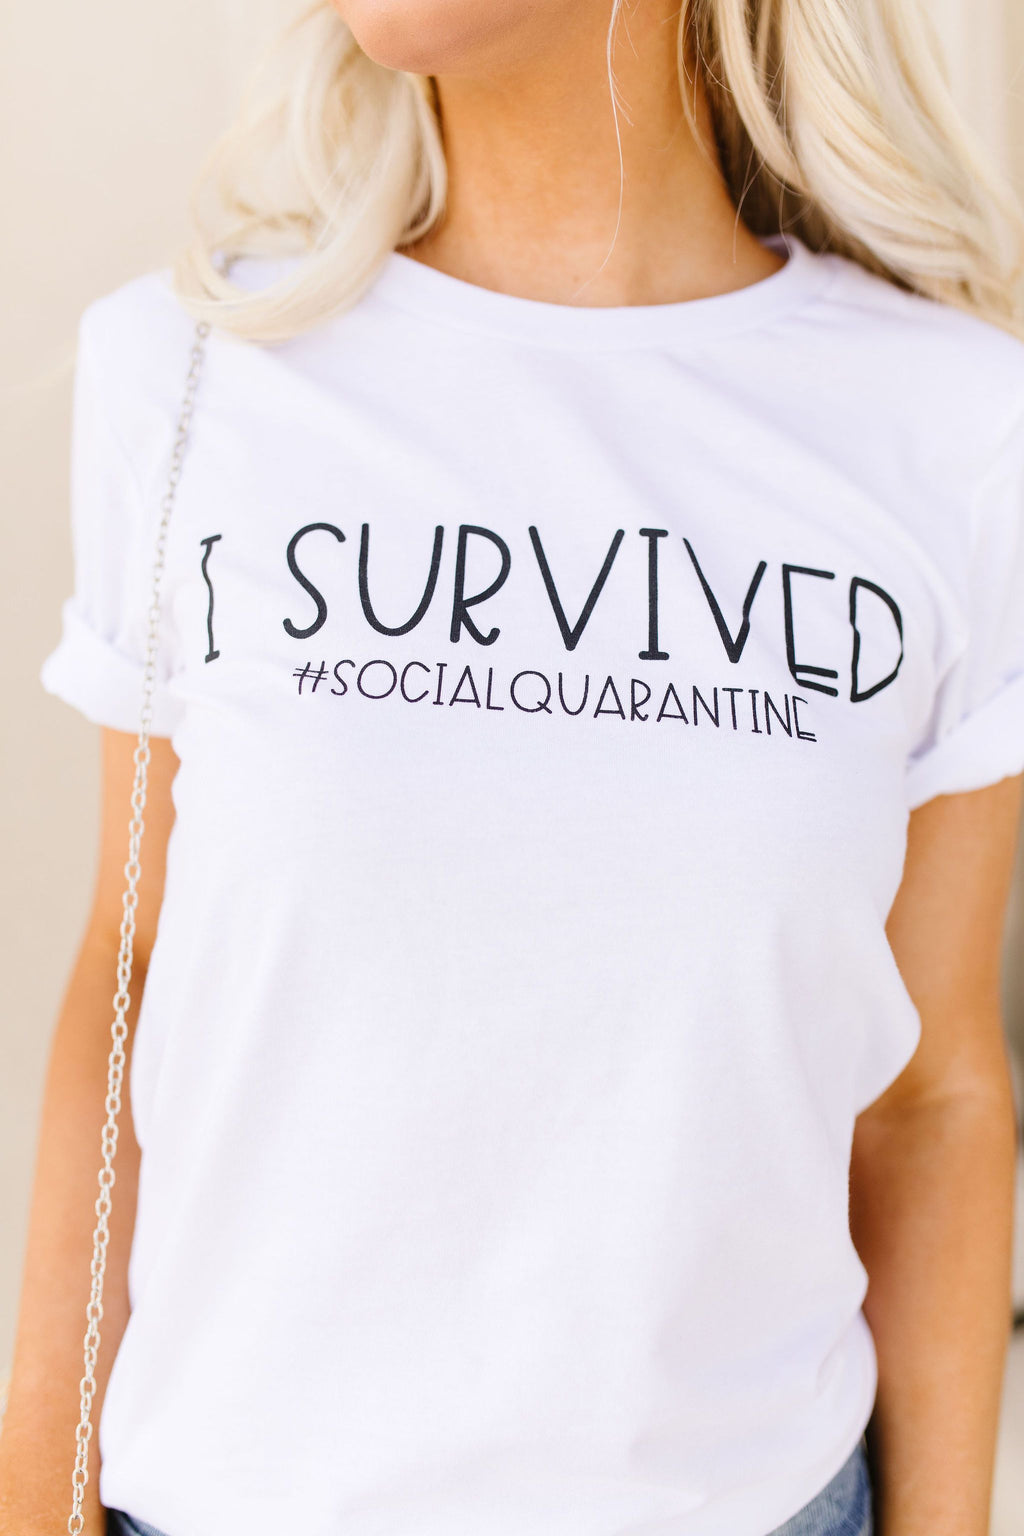 Survivor Graphic Tee-2XL, 3XL, 4-23-2020, BFCM2020, Bonus, FeaturedJan21, Final Few Friday, Group A, Group B, Group C, Group D, Group T, Large, Medium, Plus, Small, Tops, XL, XS-Womens Artisan USA American Made Clothing Accessories